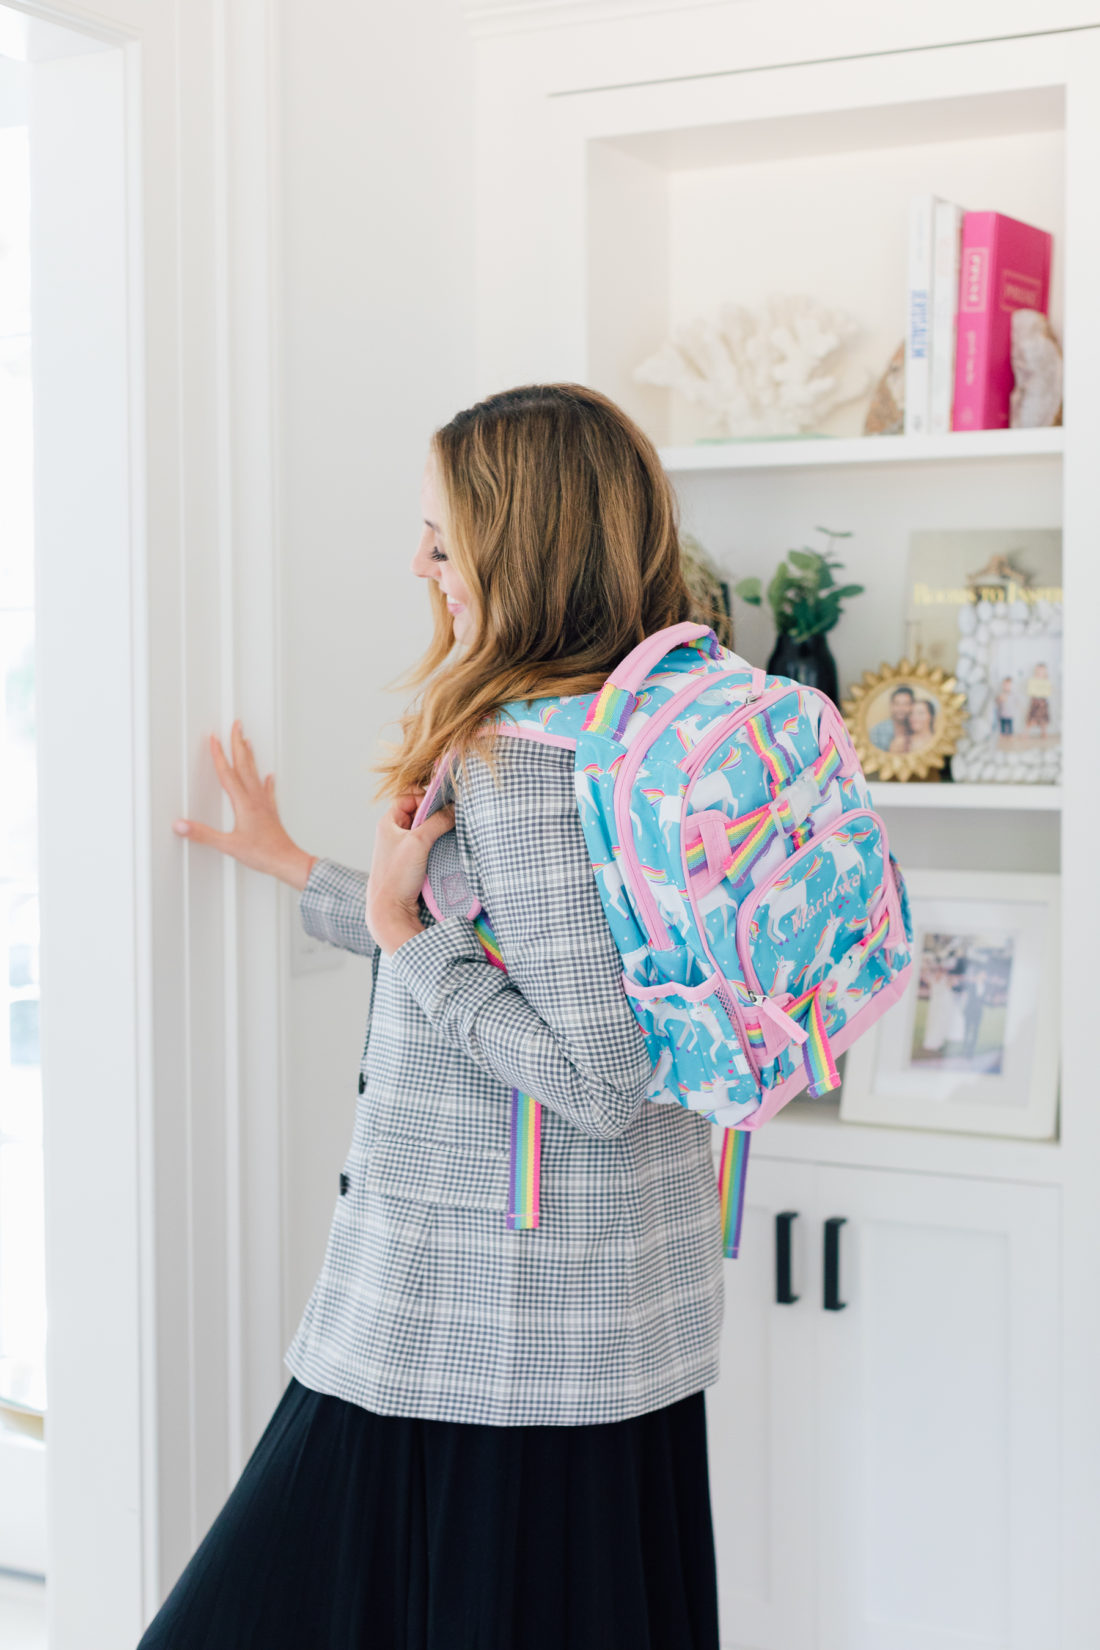 Eva Amurri Martino packs up daughter Marlowe's lunchbox in her backpack